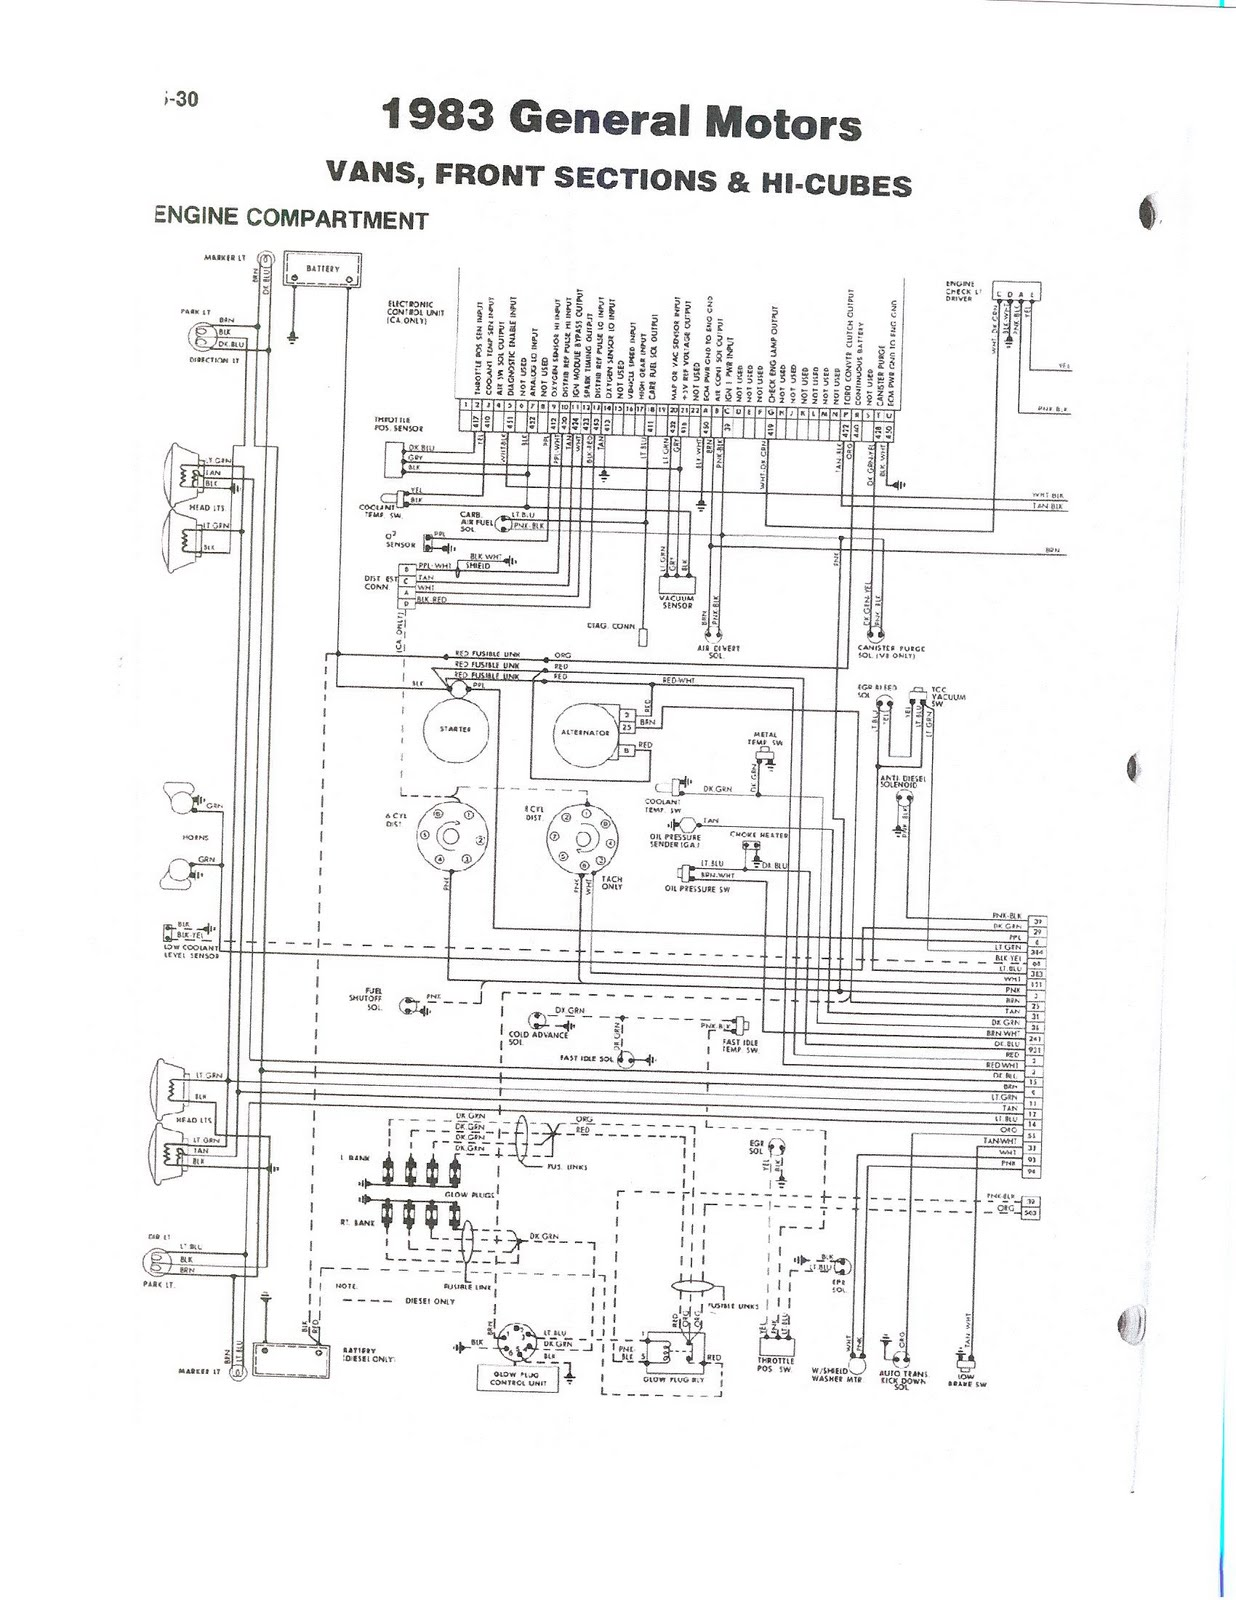 83+GM+Van+front+section+%26+Hi Cubes+engine+compartment flexsteel rv wiring diagram to 30 wiring diagram \u2022 wiring diagram Flexsteel RV Captain Chair Covers at honlapkeszites.co